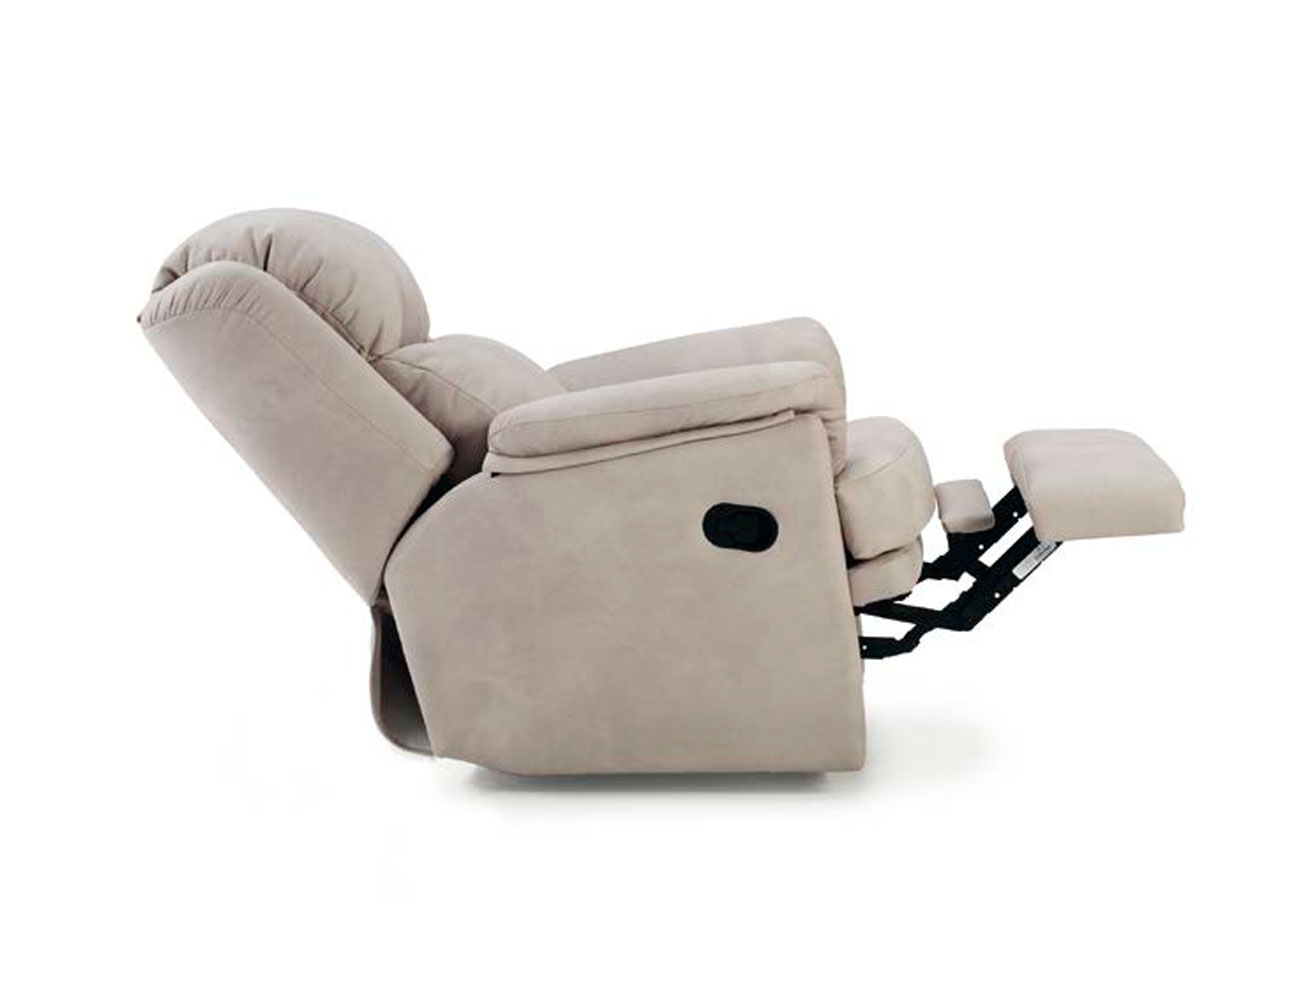 Sillon relax manual palanca esther 18